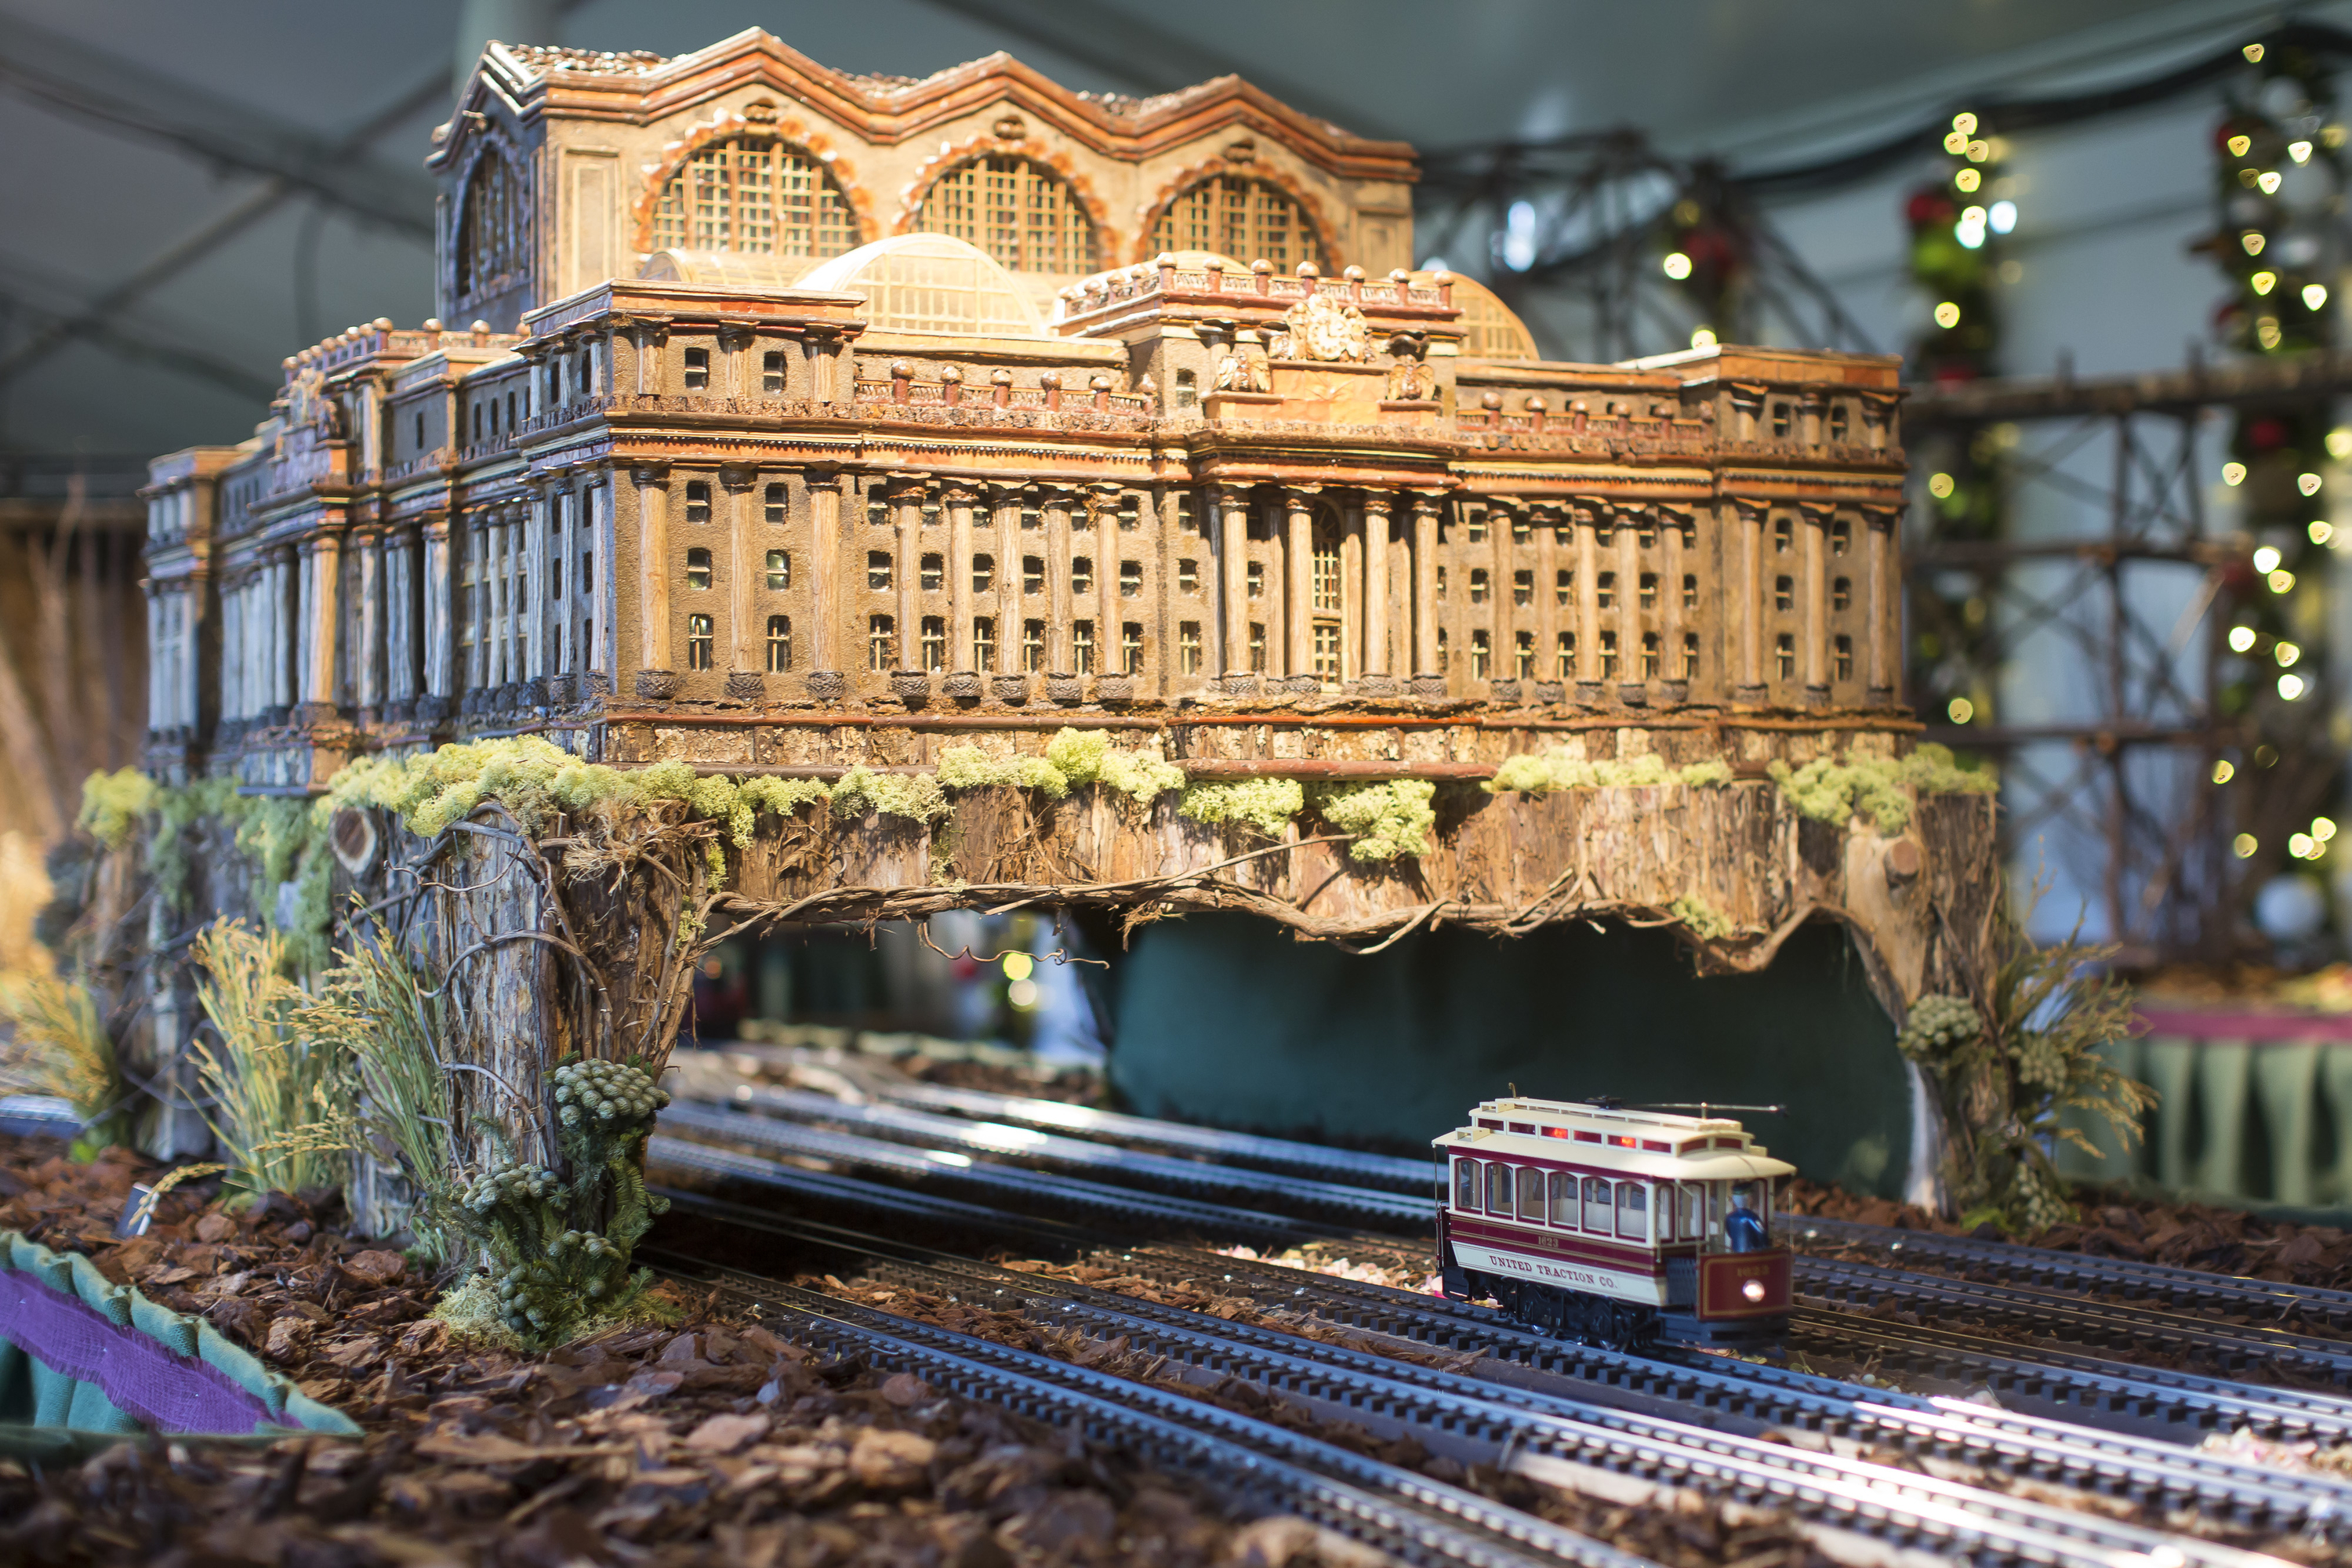 nybg train show 2015 - Bronx Botanical Garden Train Show